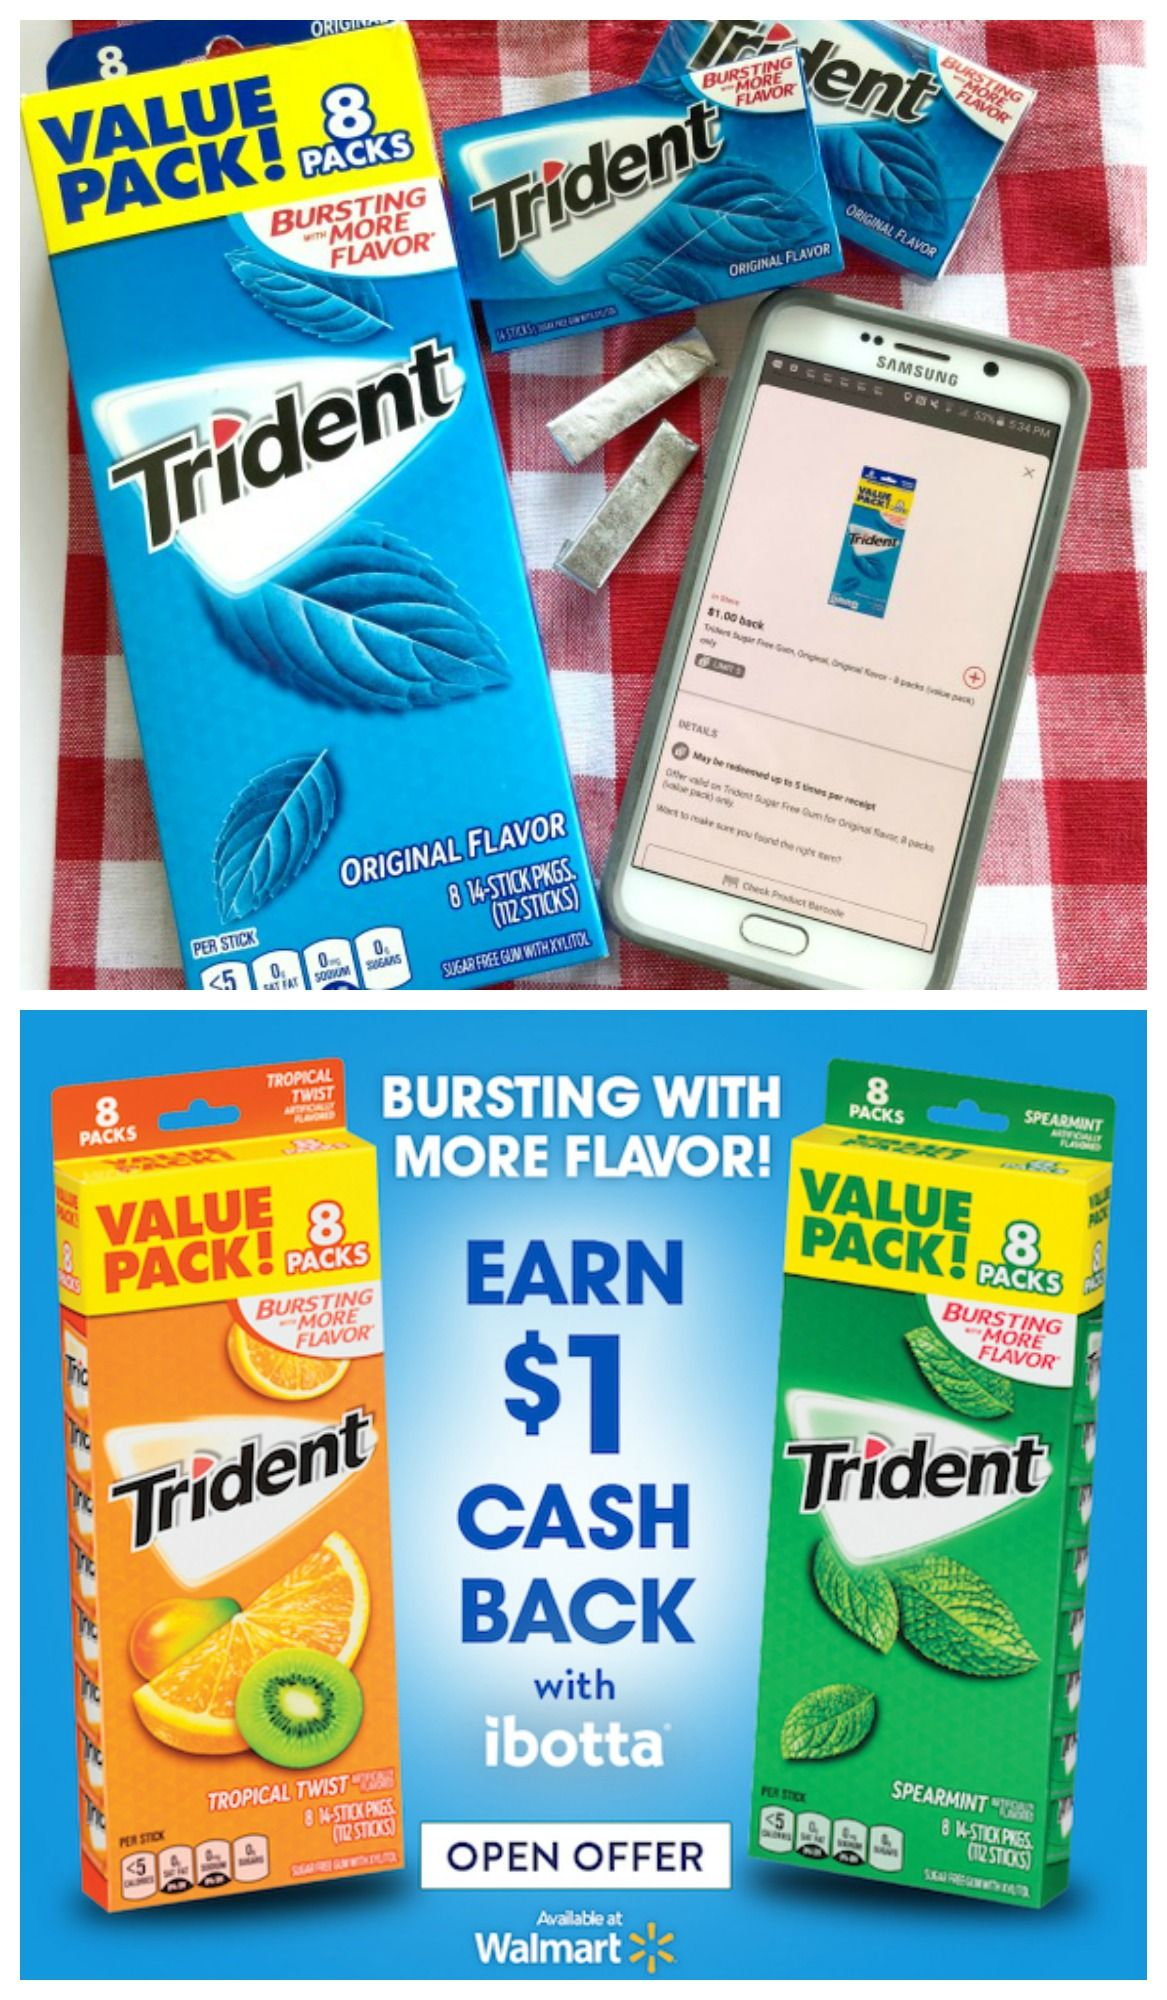 Trident at Walmart 1 Ibotta Cash Back Offer + a